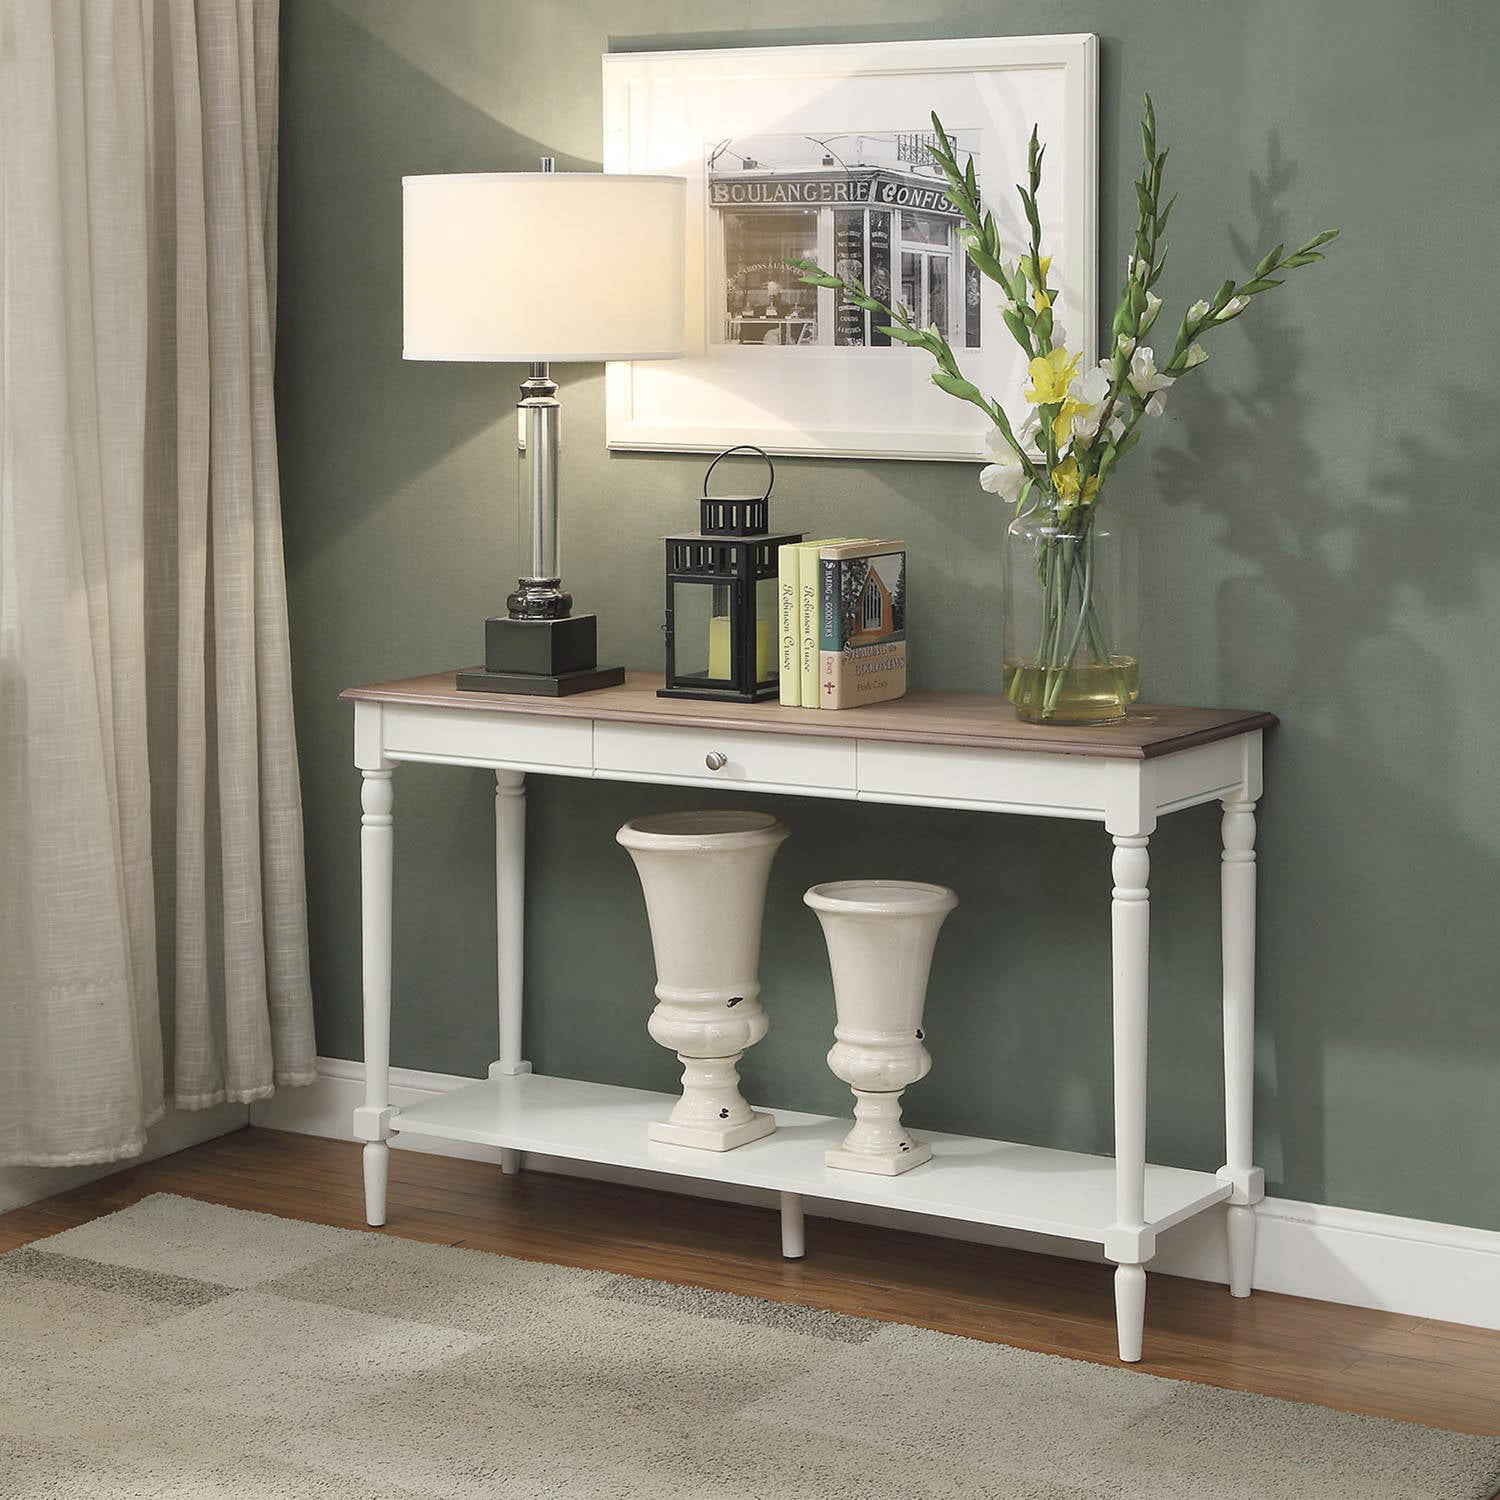 Convenience Concepts French Country Console Table with Drawer and Shelf by Overstock